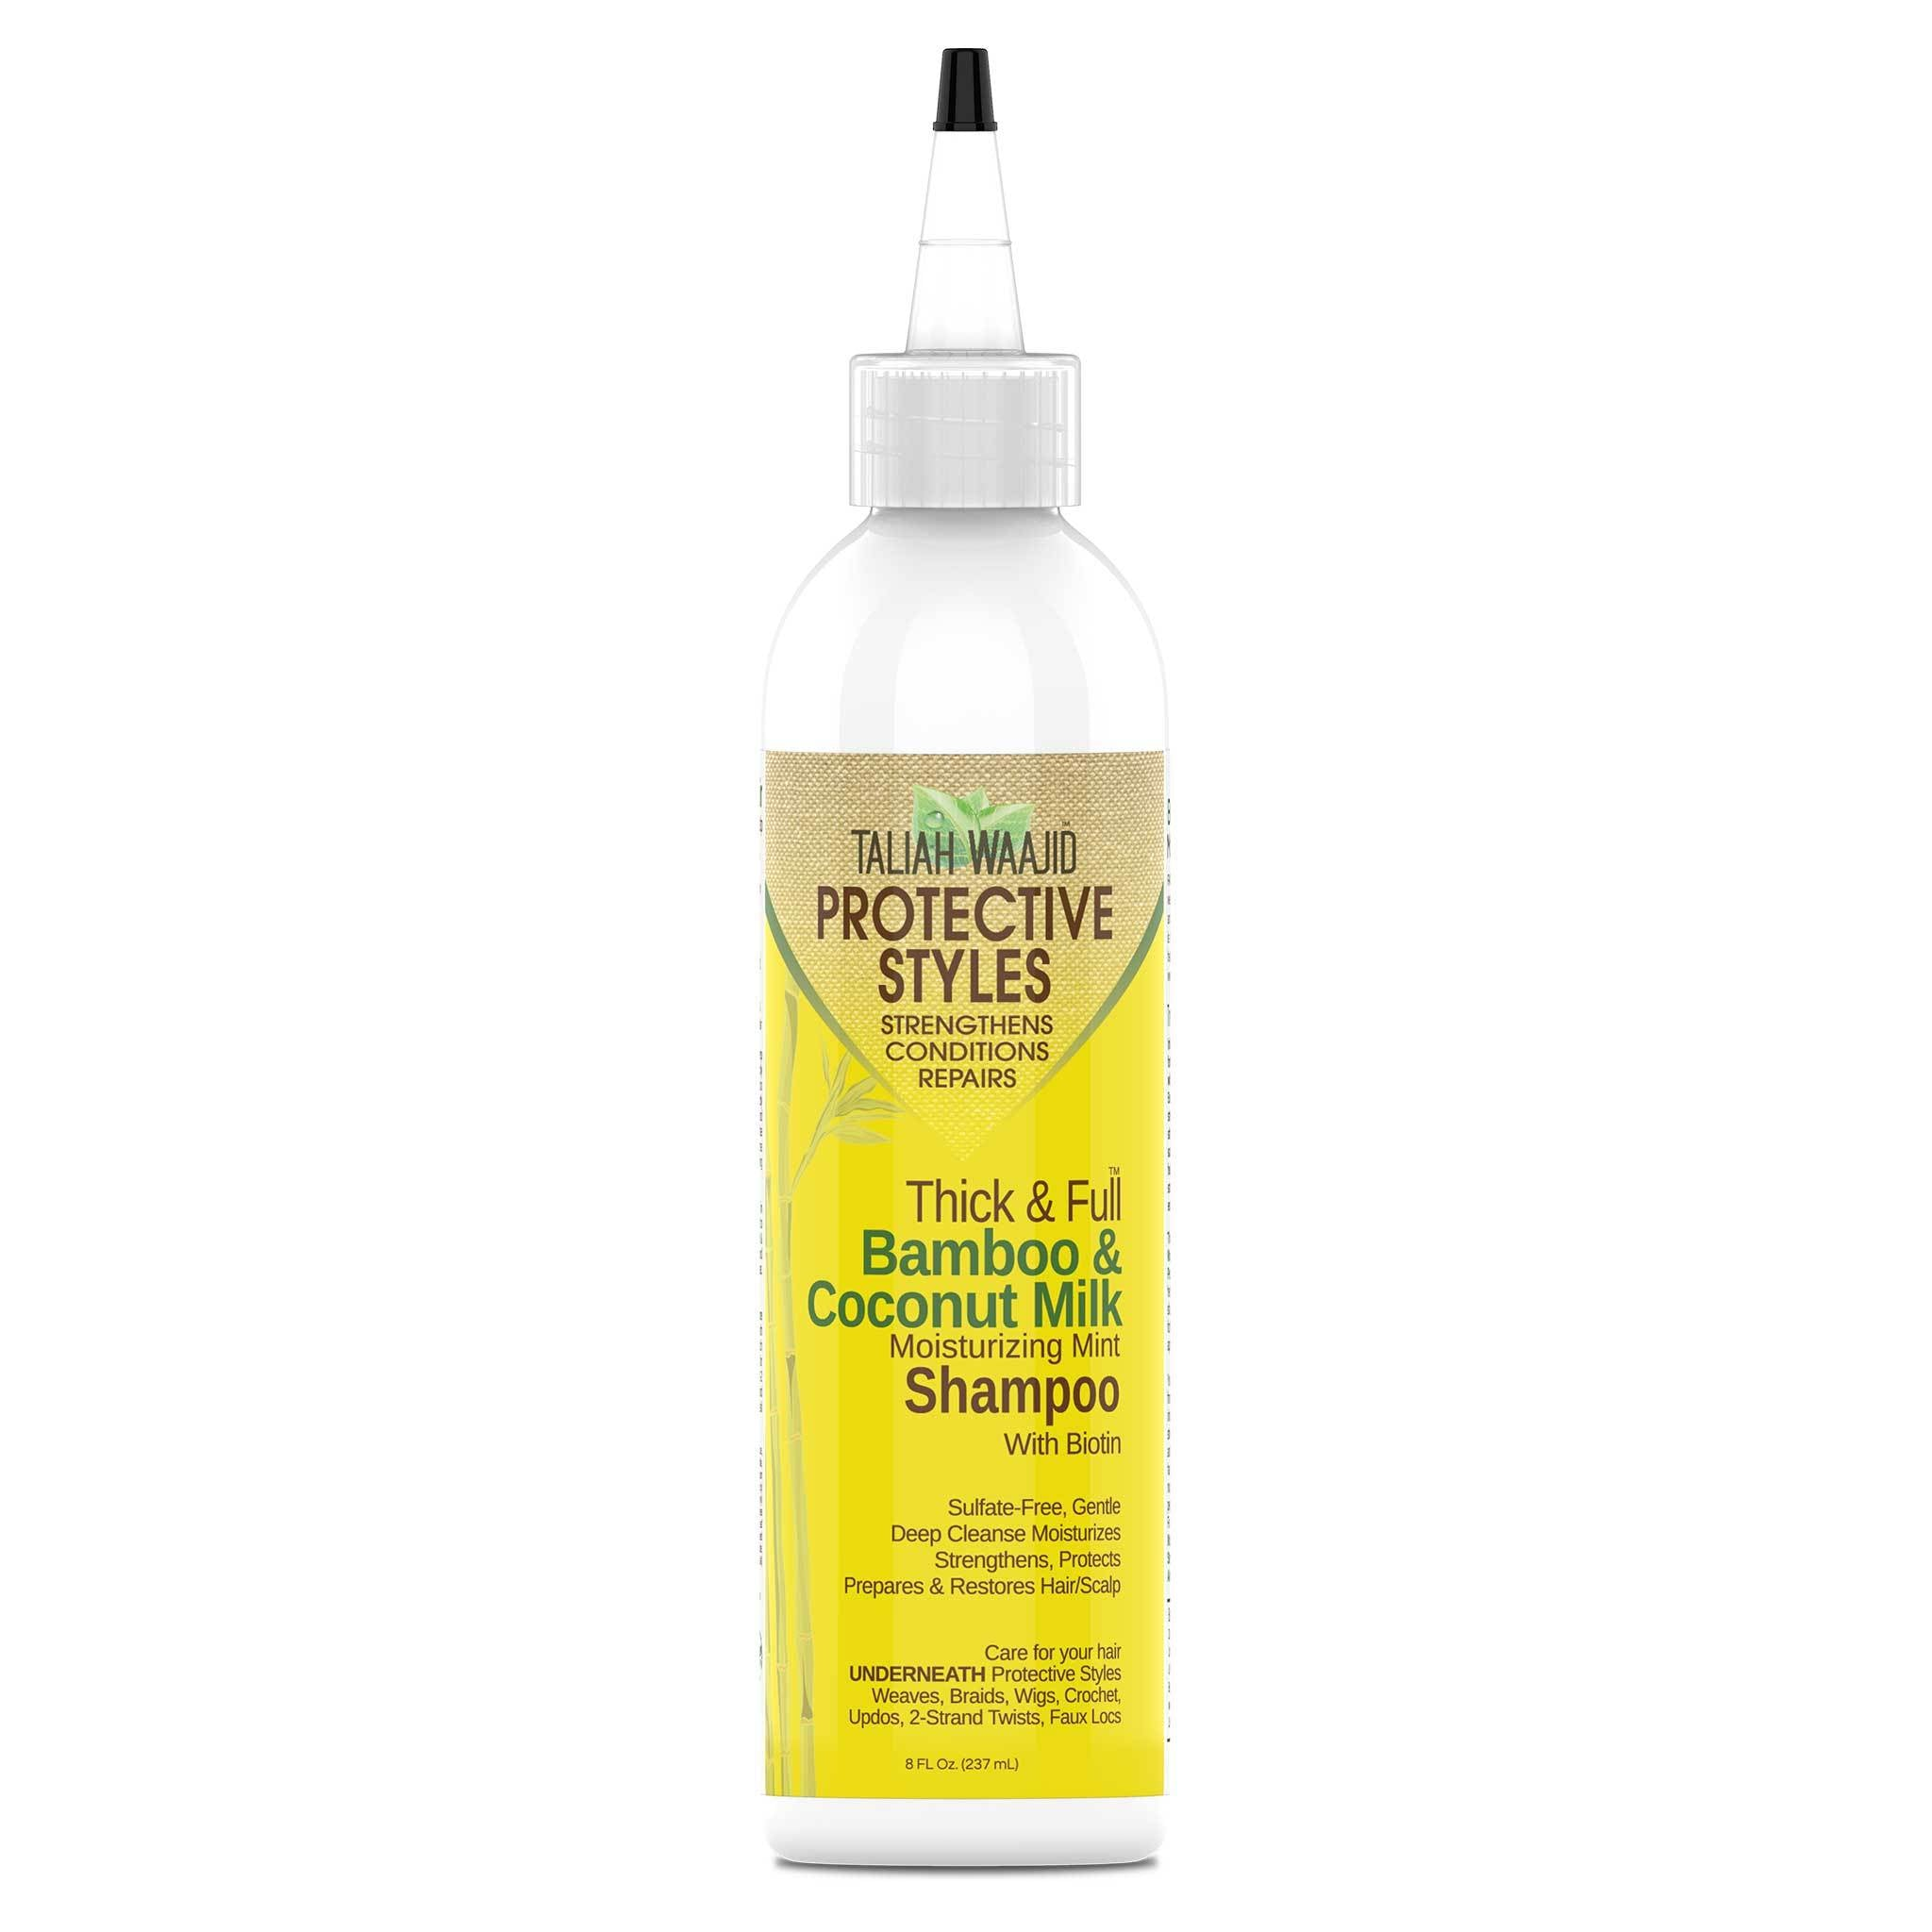 Thick And Full™ Bamboo And Coconut Milk Moisturizing Mint Shampoo 8oz